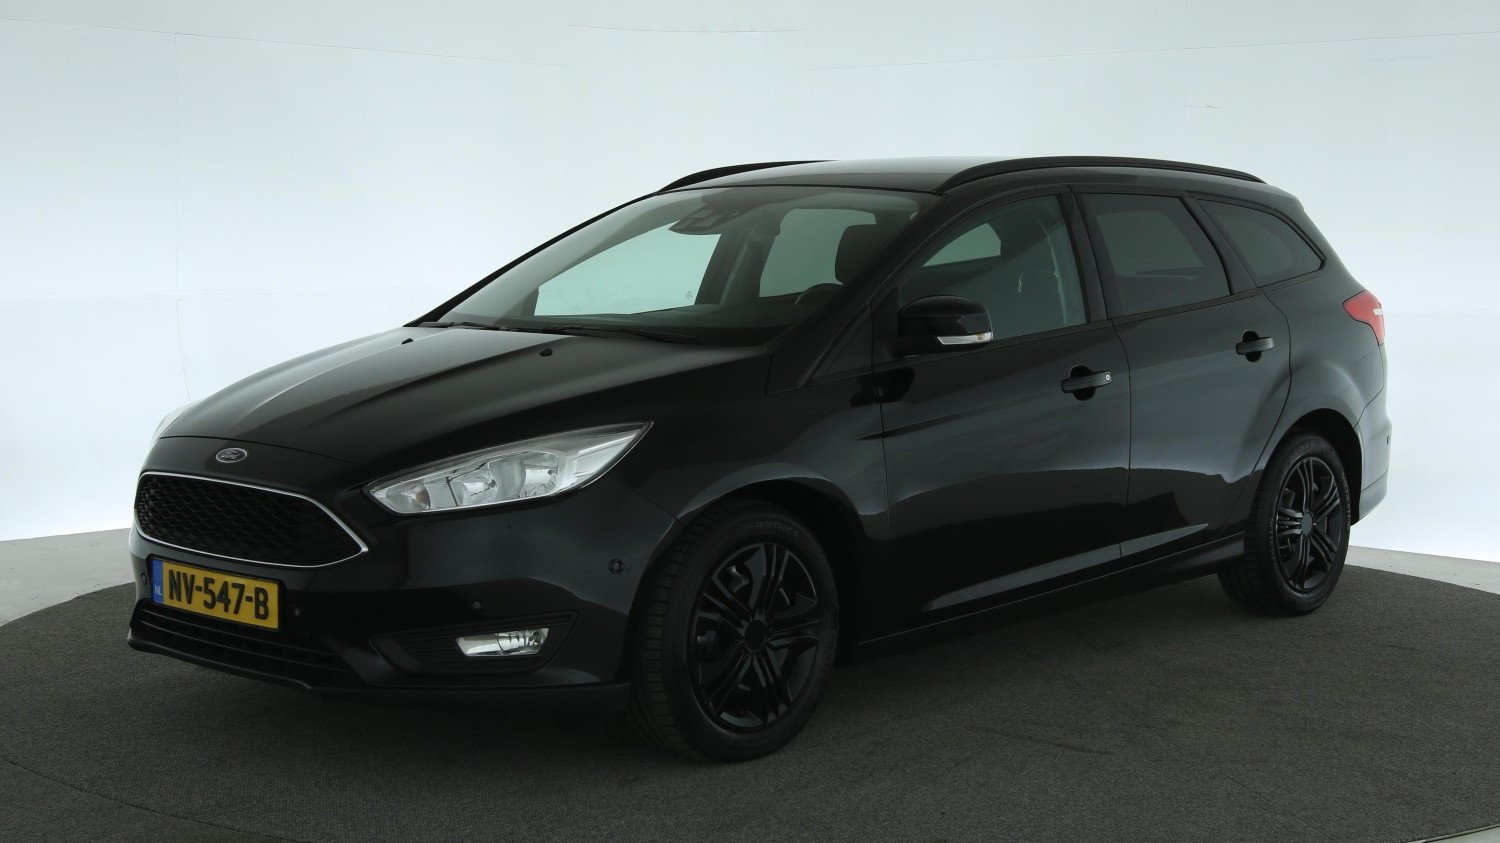 Ford Focus Station 2016 NV-547-B 1